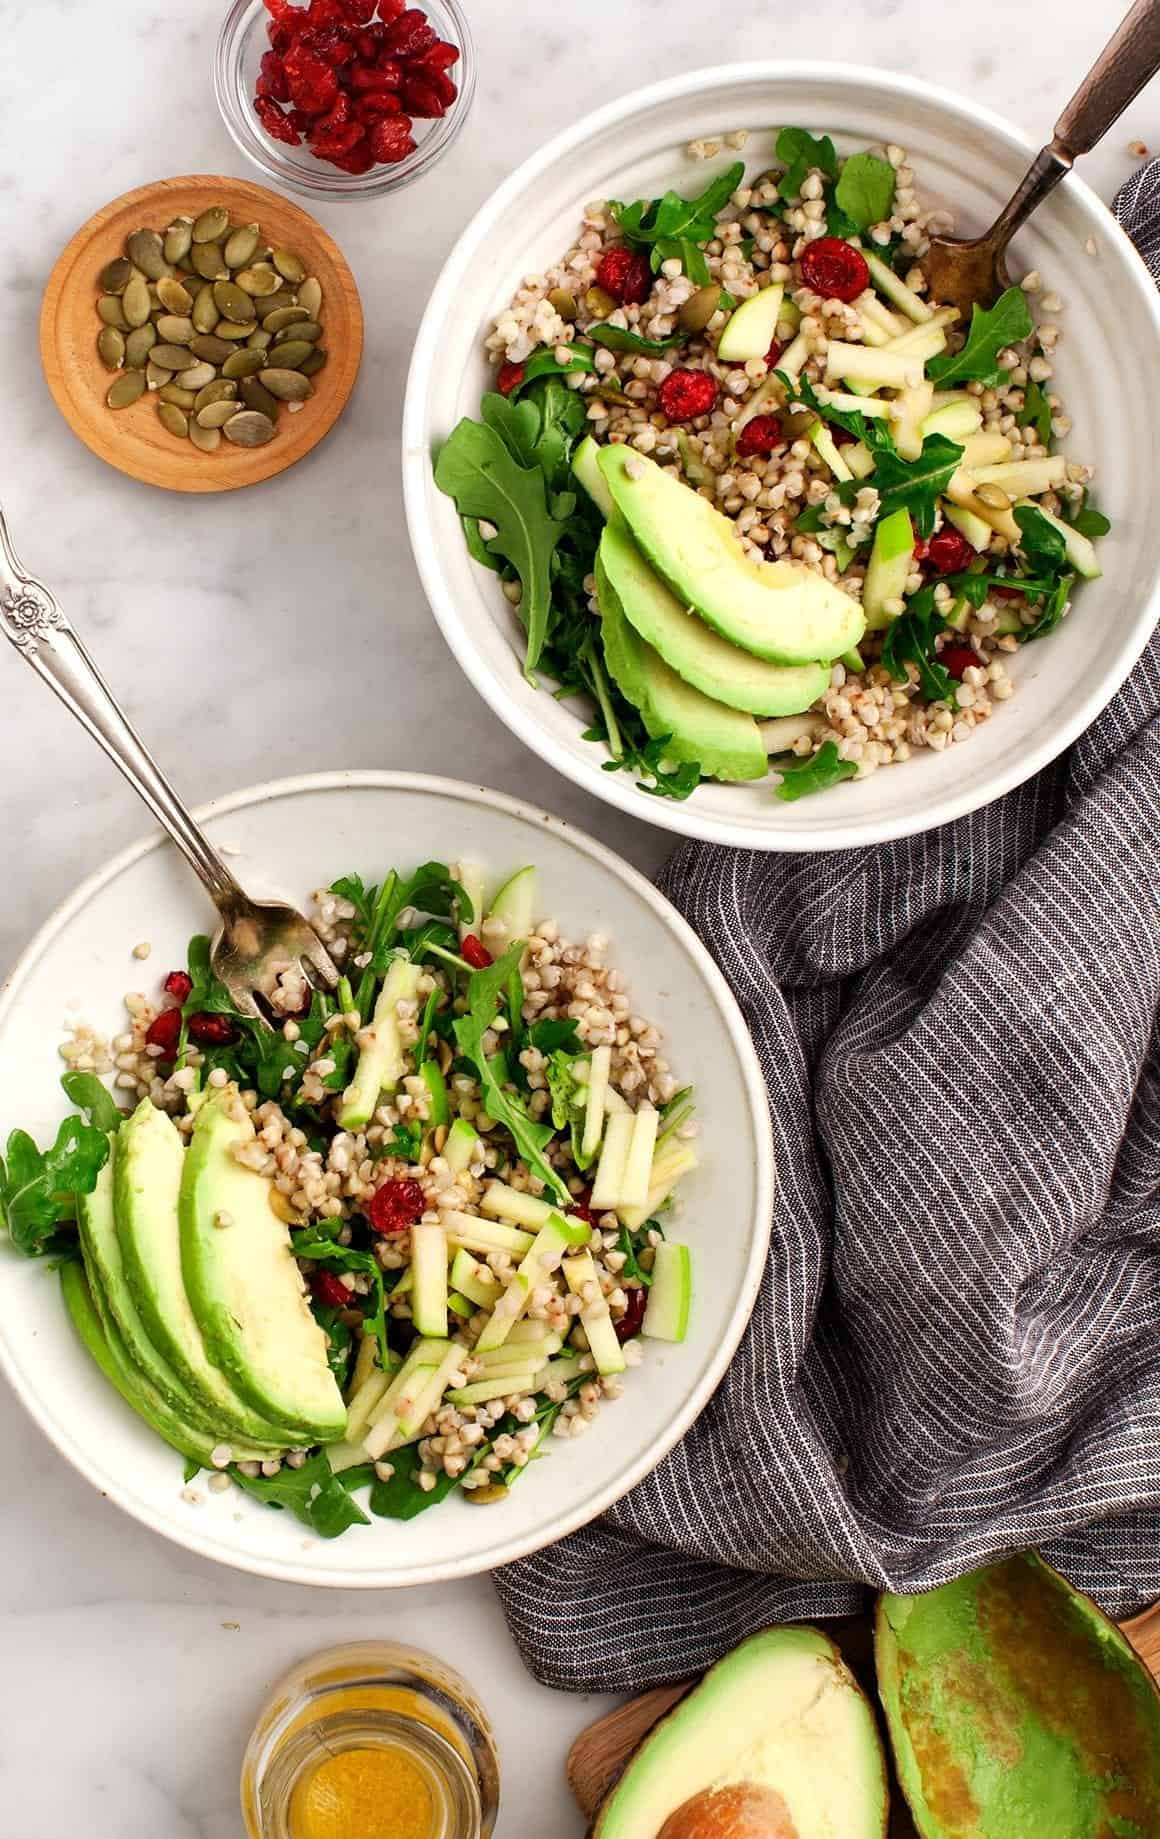 Buckwheat, Apple, Cranberry Avocado Salad in bowls with forks